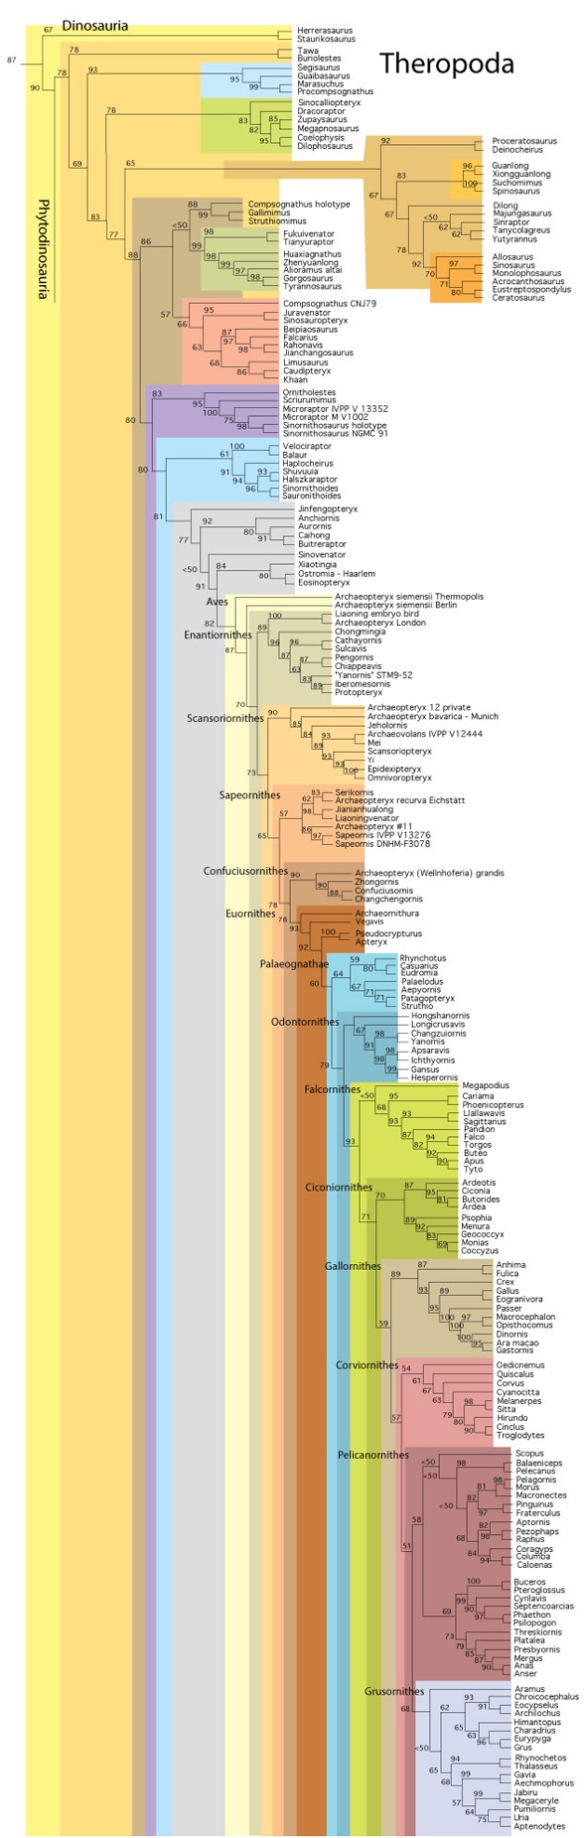 Figure 1. More taxa, updated tree, new clade names.